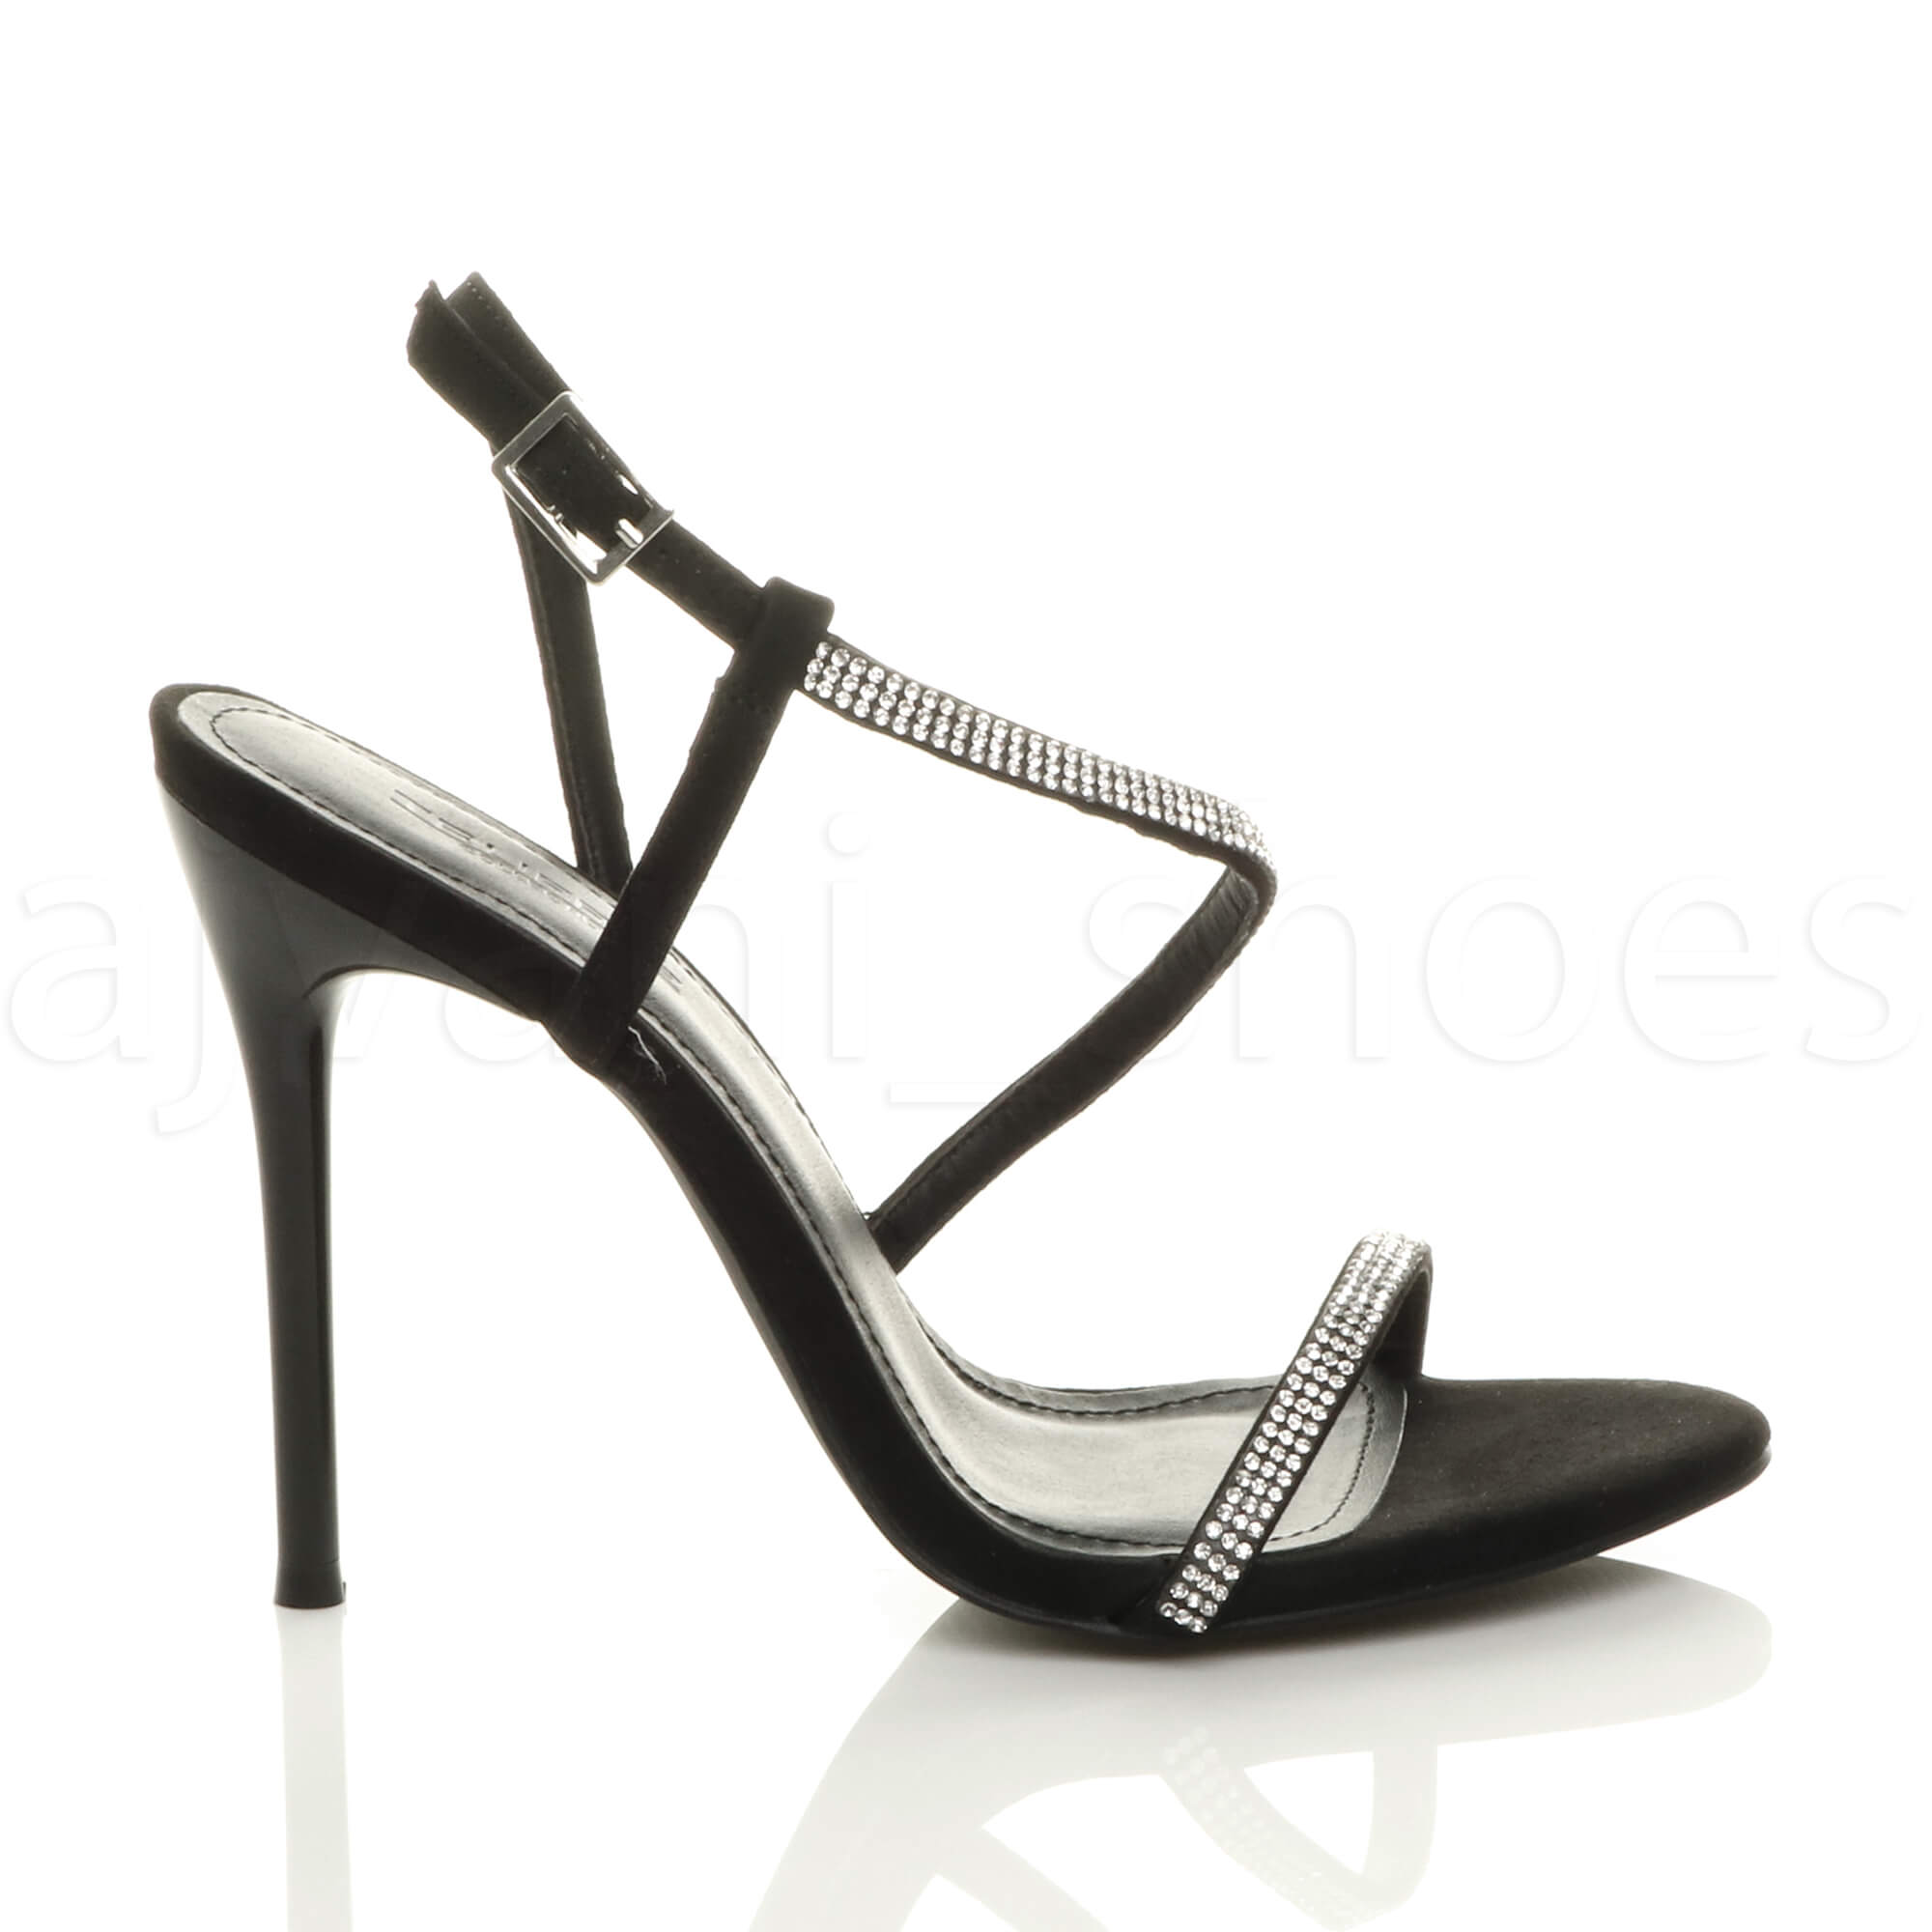 WOMENS-LADIES-HIGH-HEEL-DIAMANTE-BARELY-THERE-STRAPPY-EVENING-SANDALS-SIZE thumbnail 3